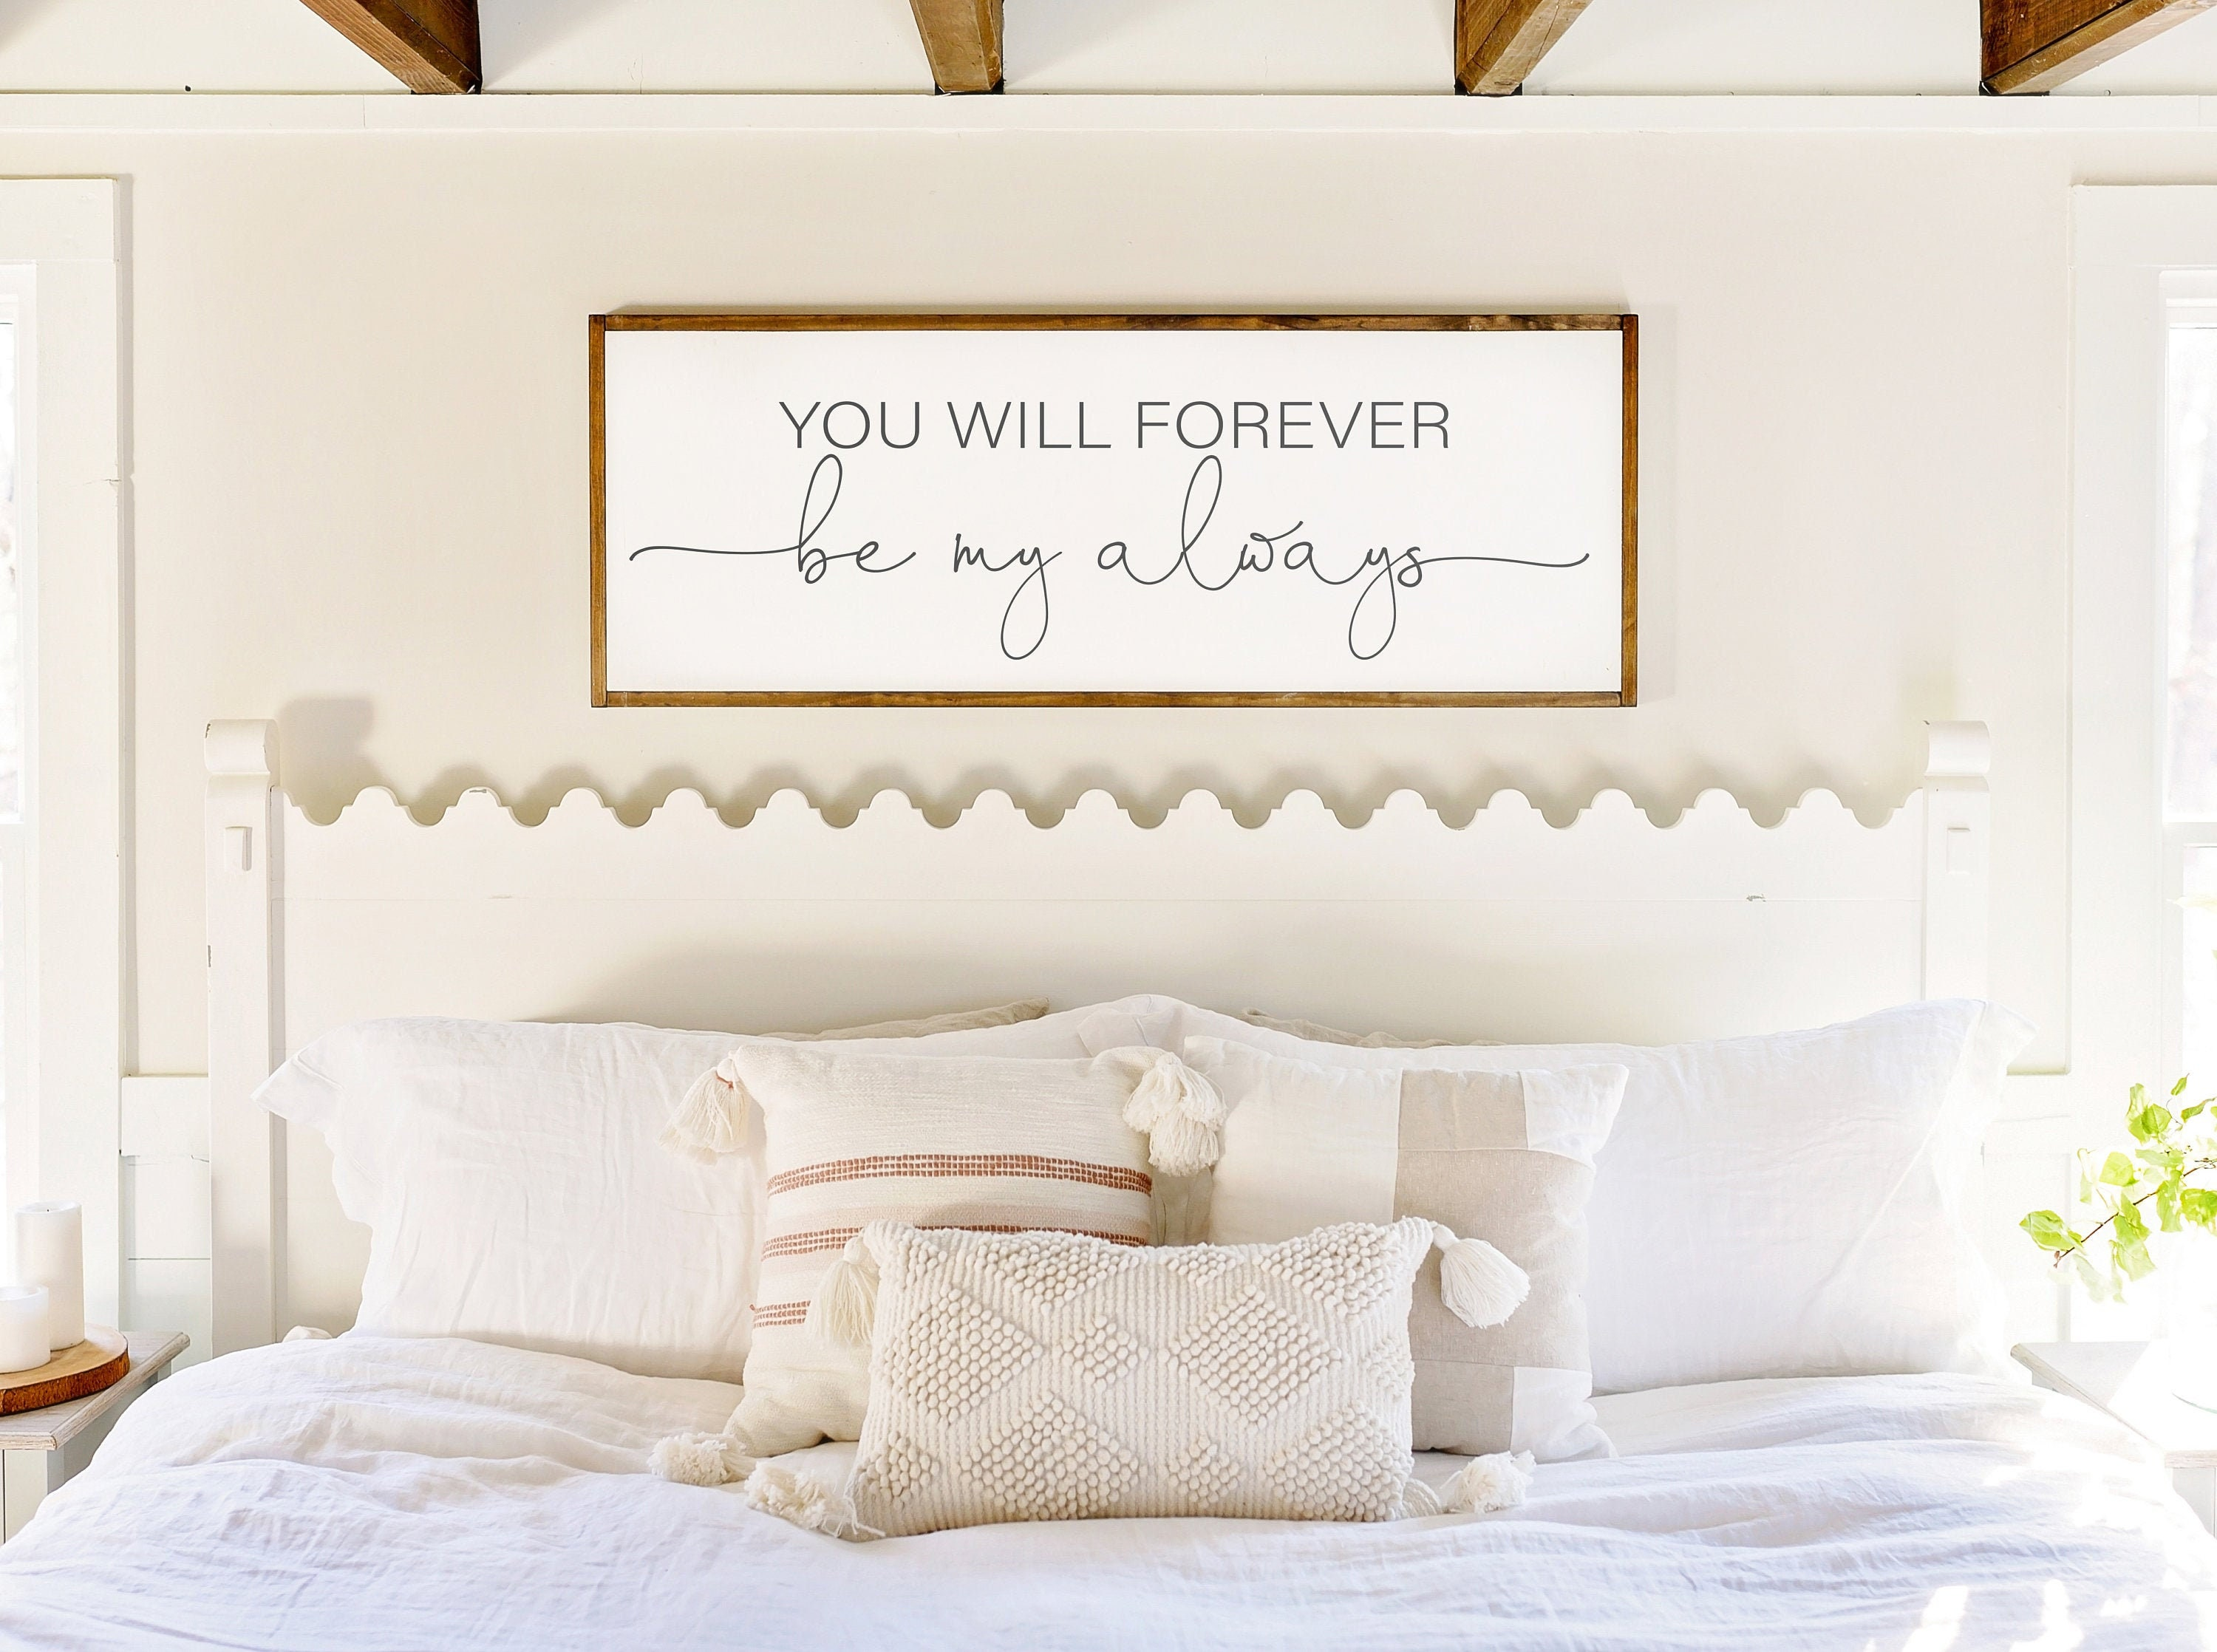 Bedroom Wall Decor  Sign for Above Bed  You Will Forever be My Always  Wood Sign  Master Bedroom Wall Decor  Above Bed Signs